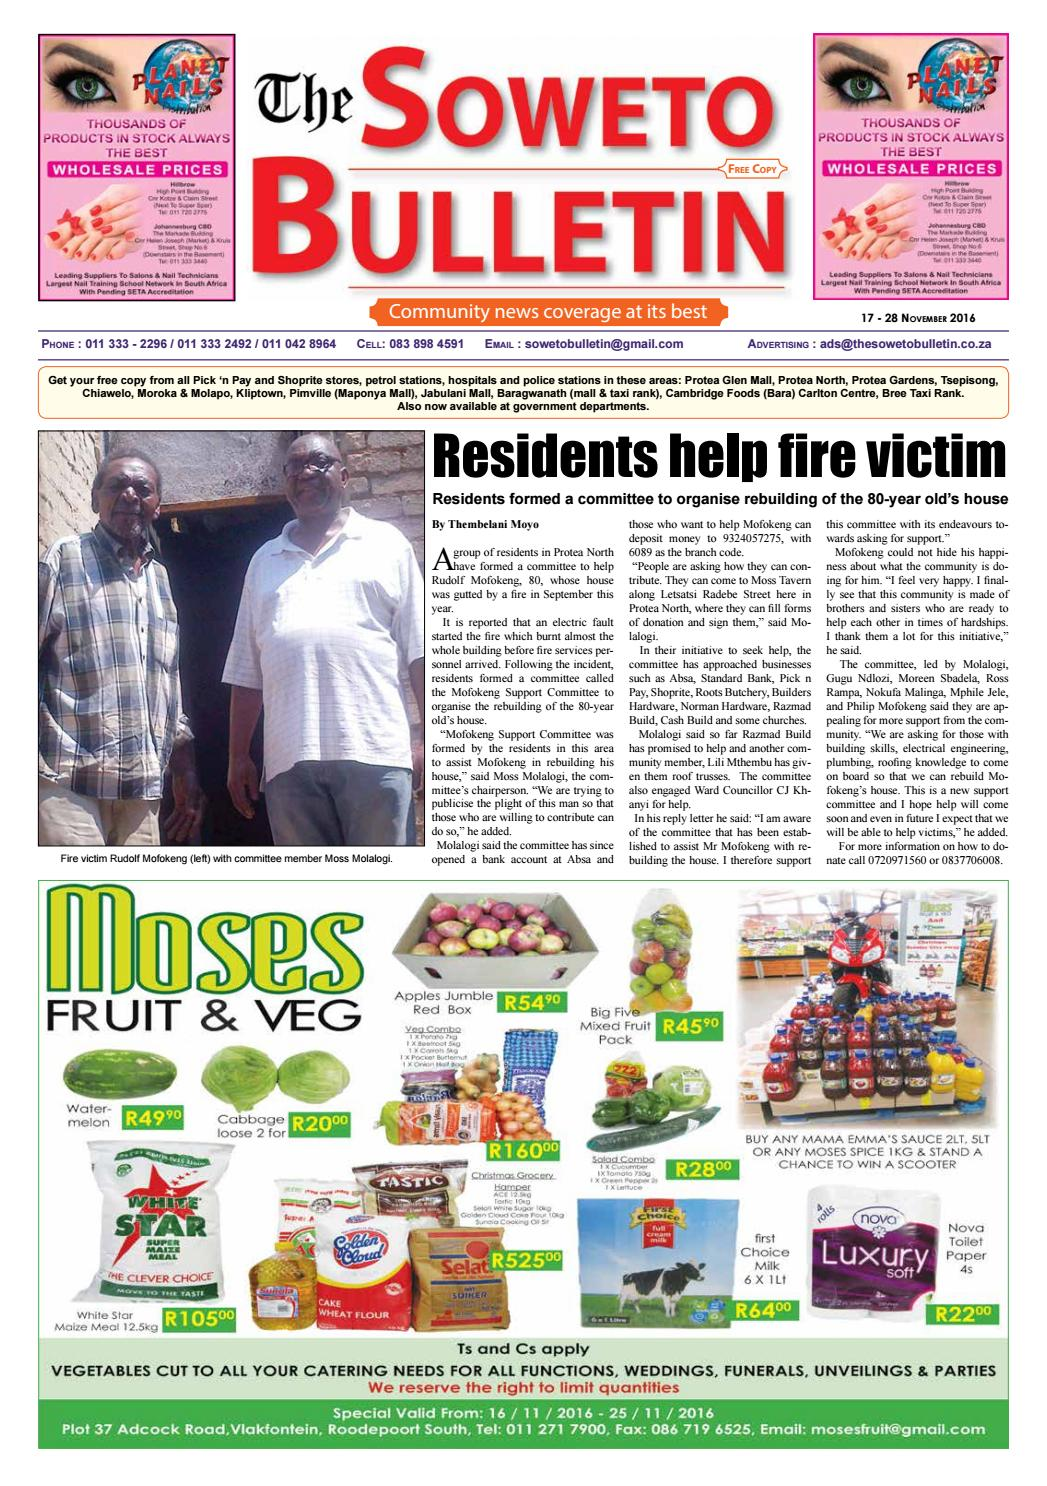 The soweto bulletin 17 28 november 2016 by Localdotcom - issuu